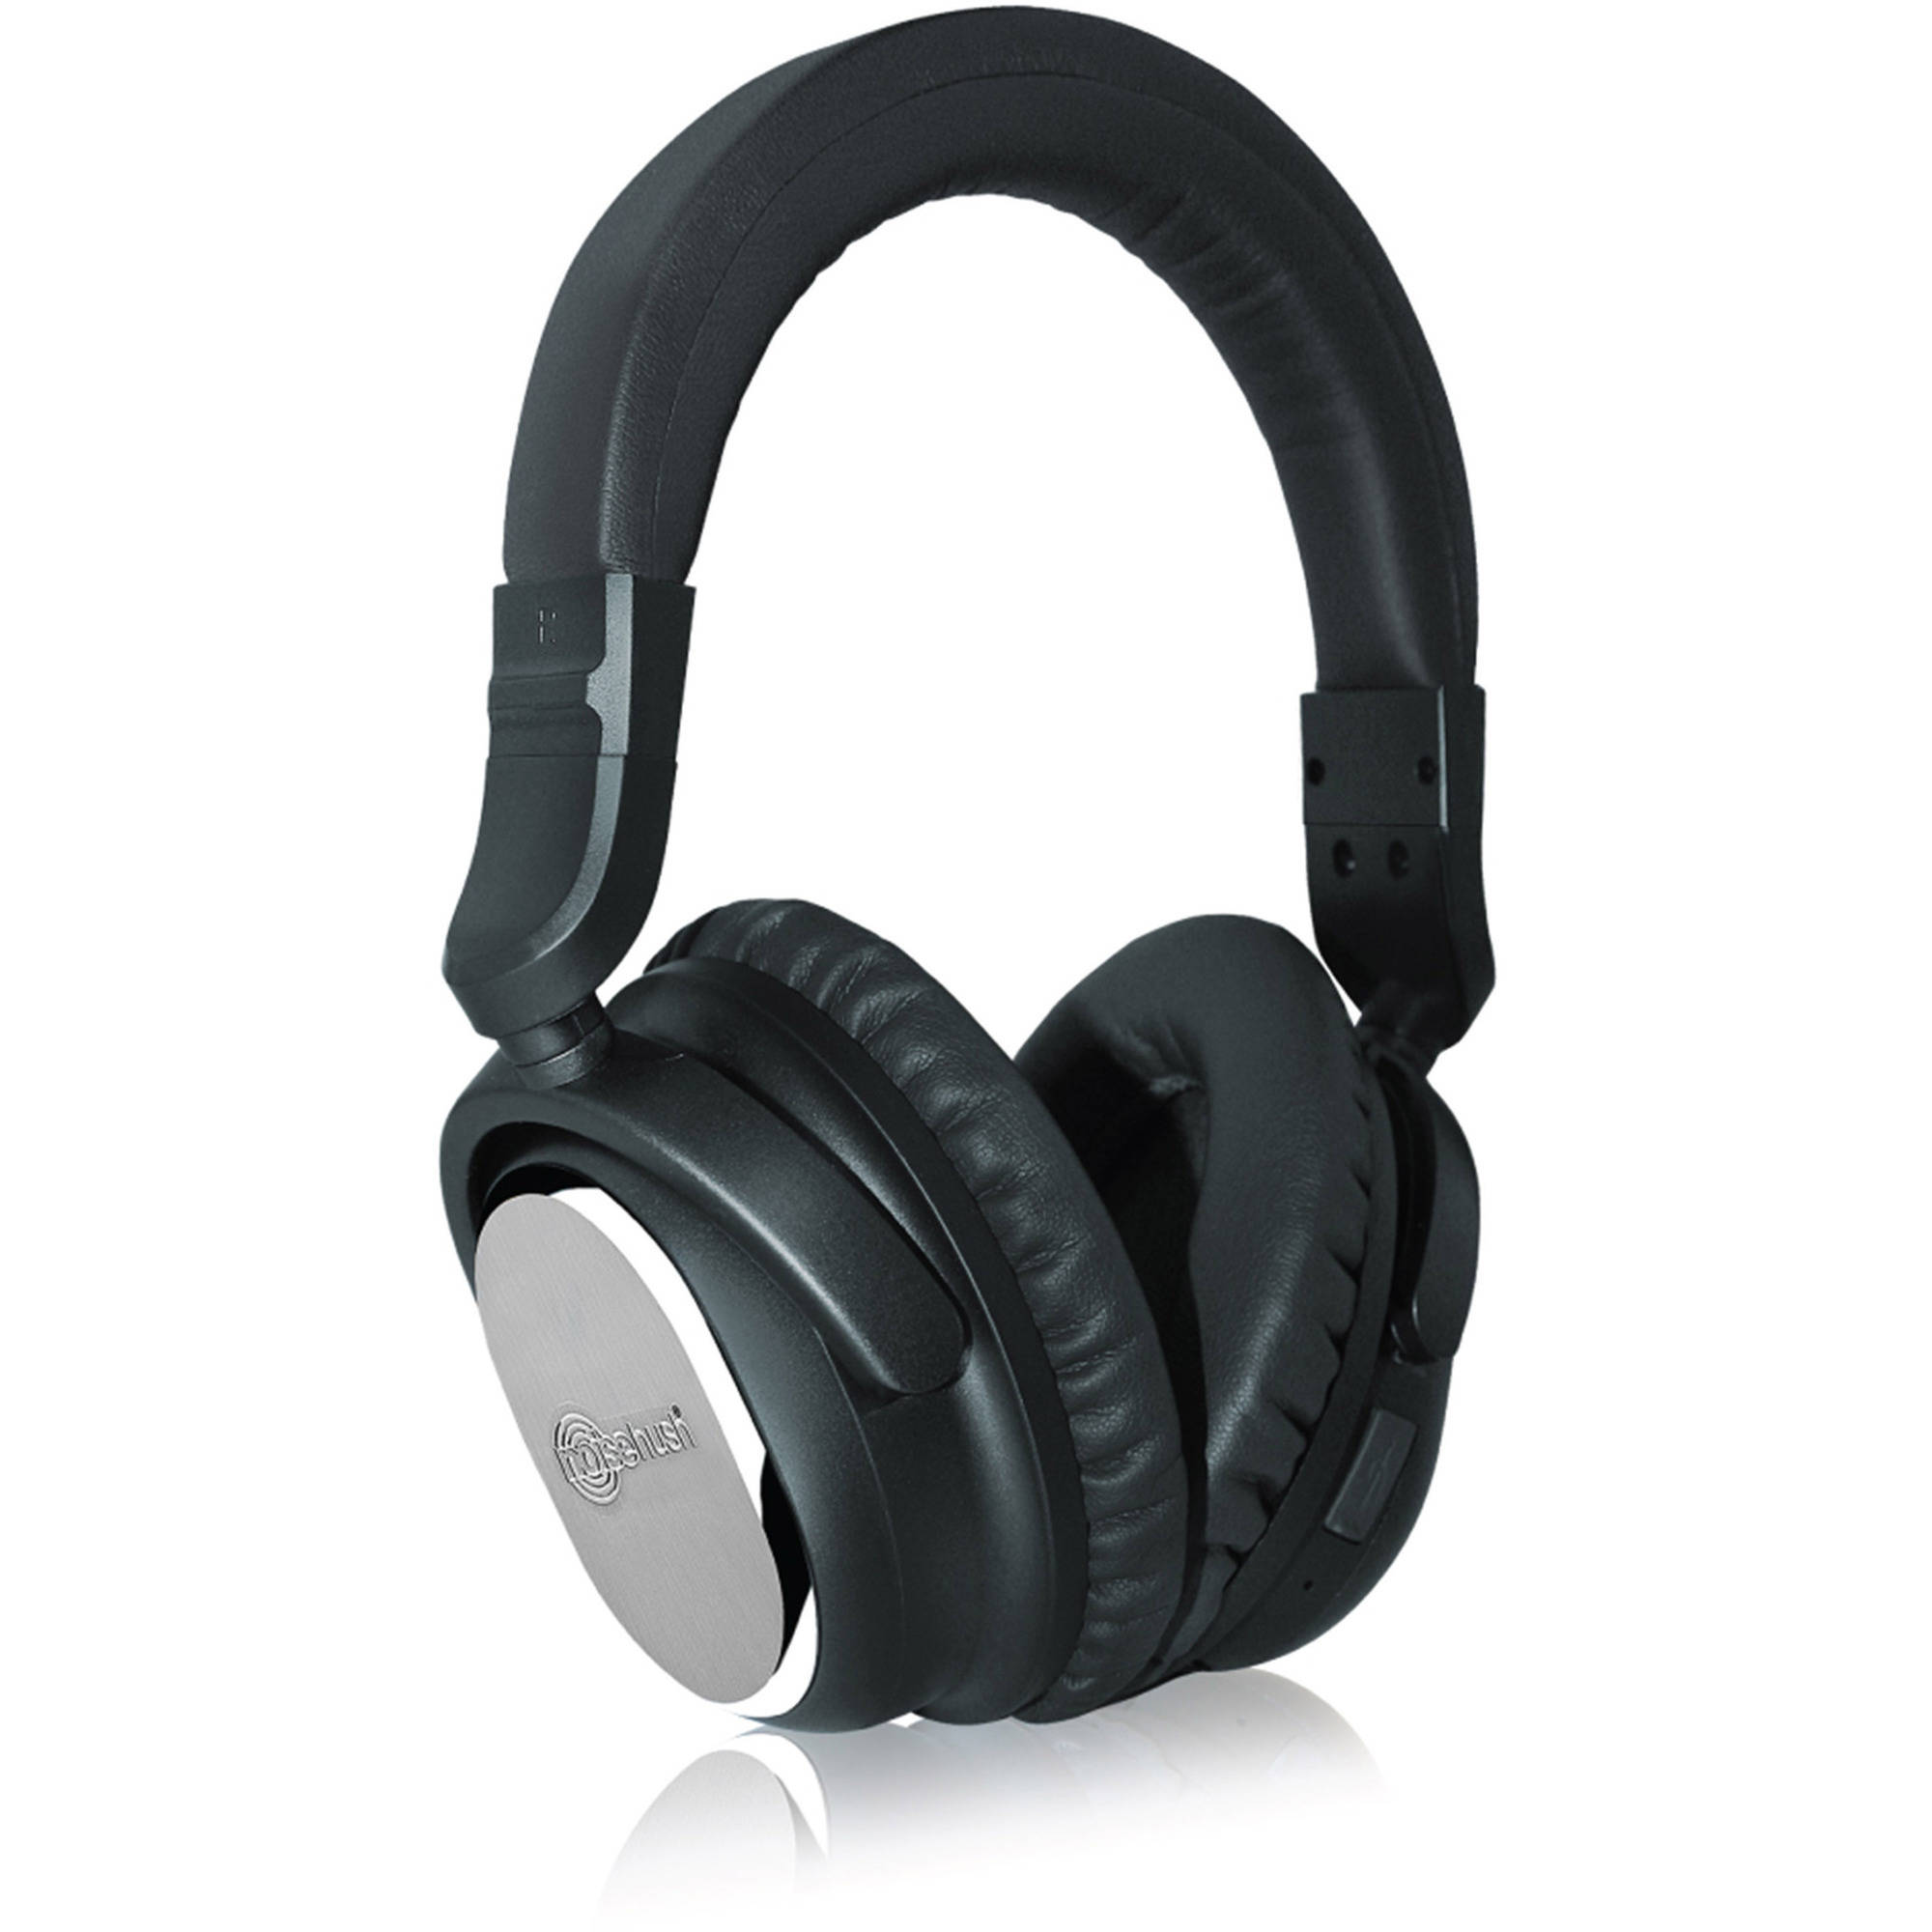 NoiseHush i9 BT Active Noise-Canceling Headphones